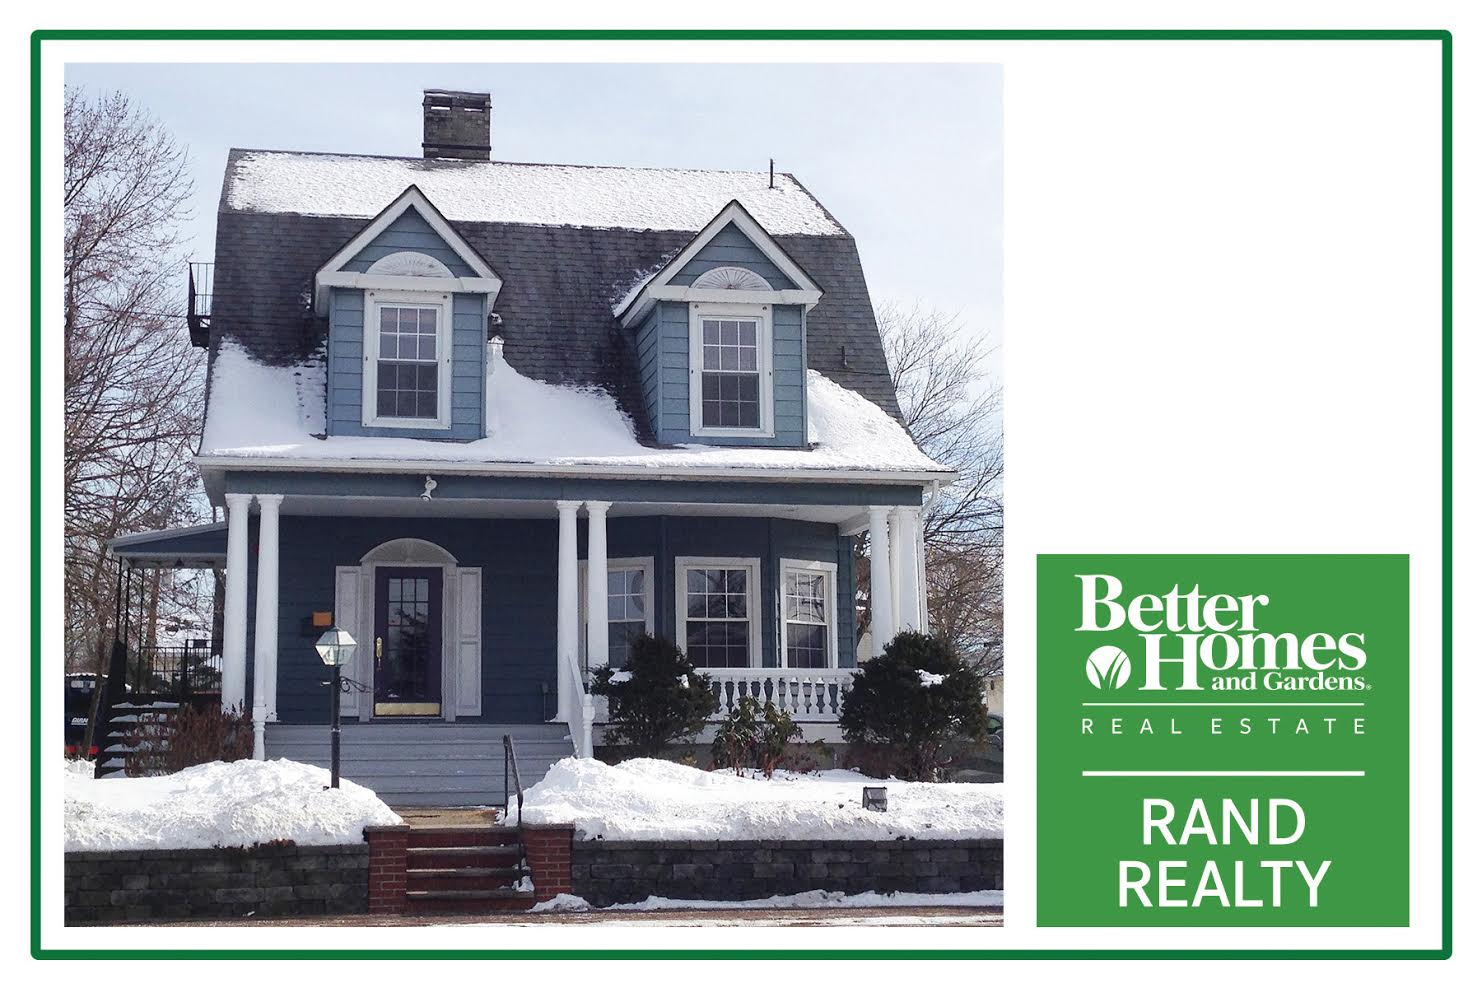 Better Homes And Gardens Rand Realty Opens New Sales